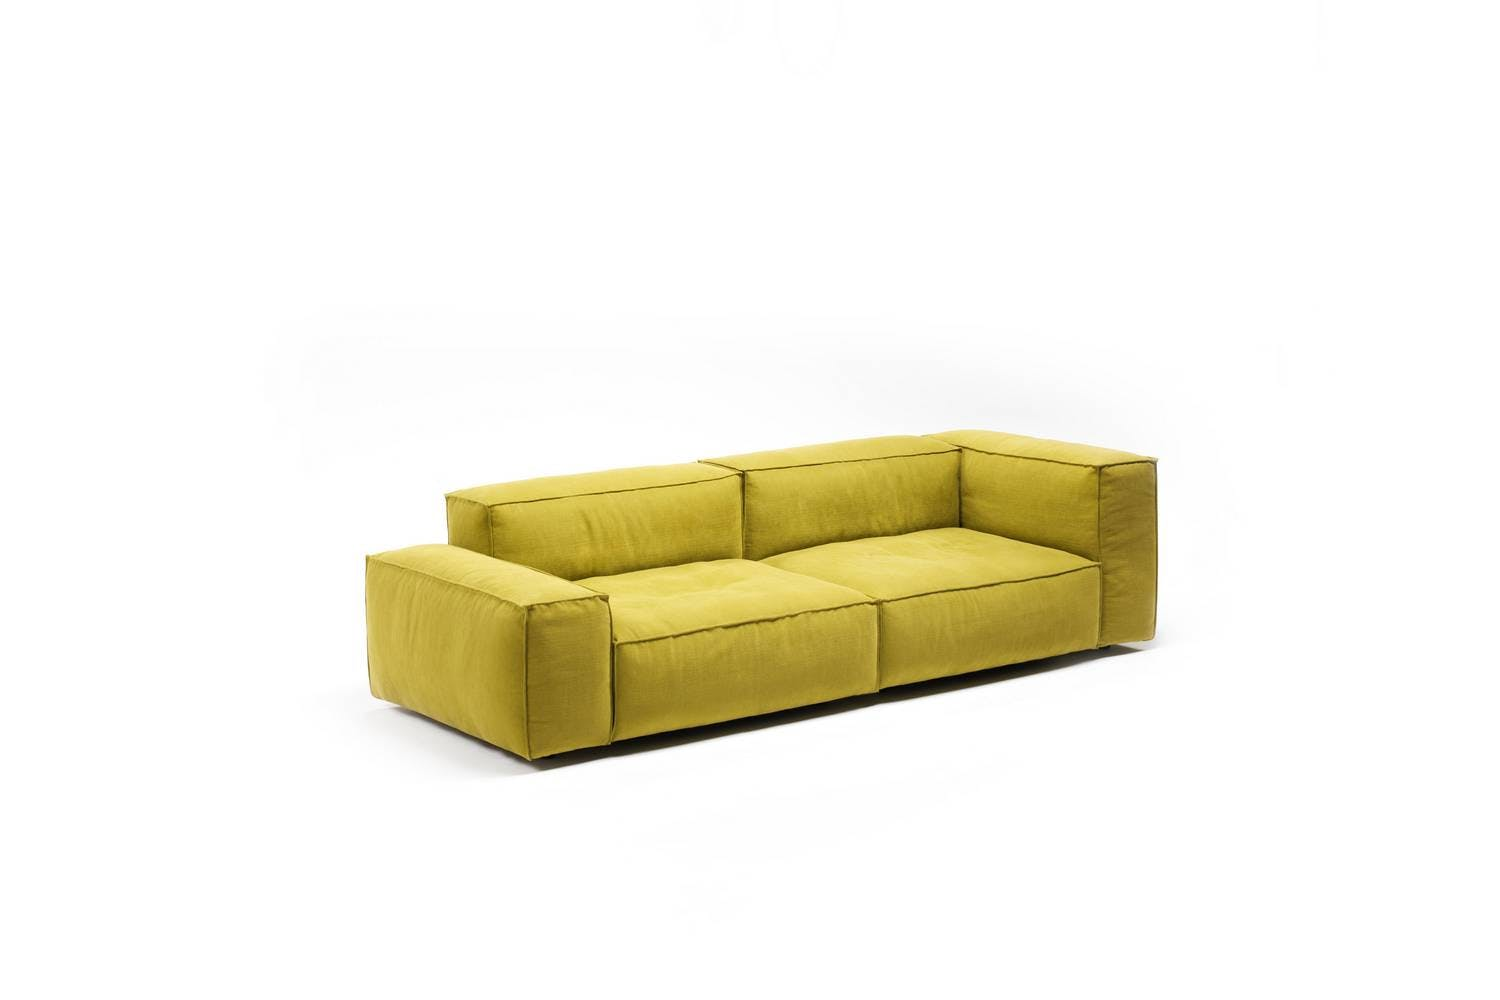 Neowall Sofa by Piero Lissoni for Living Divani | Space Furniture